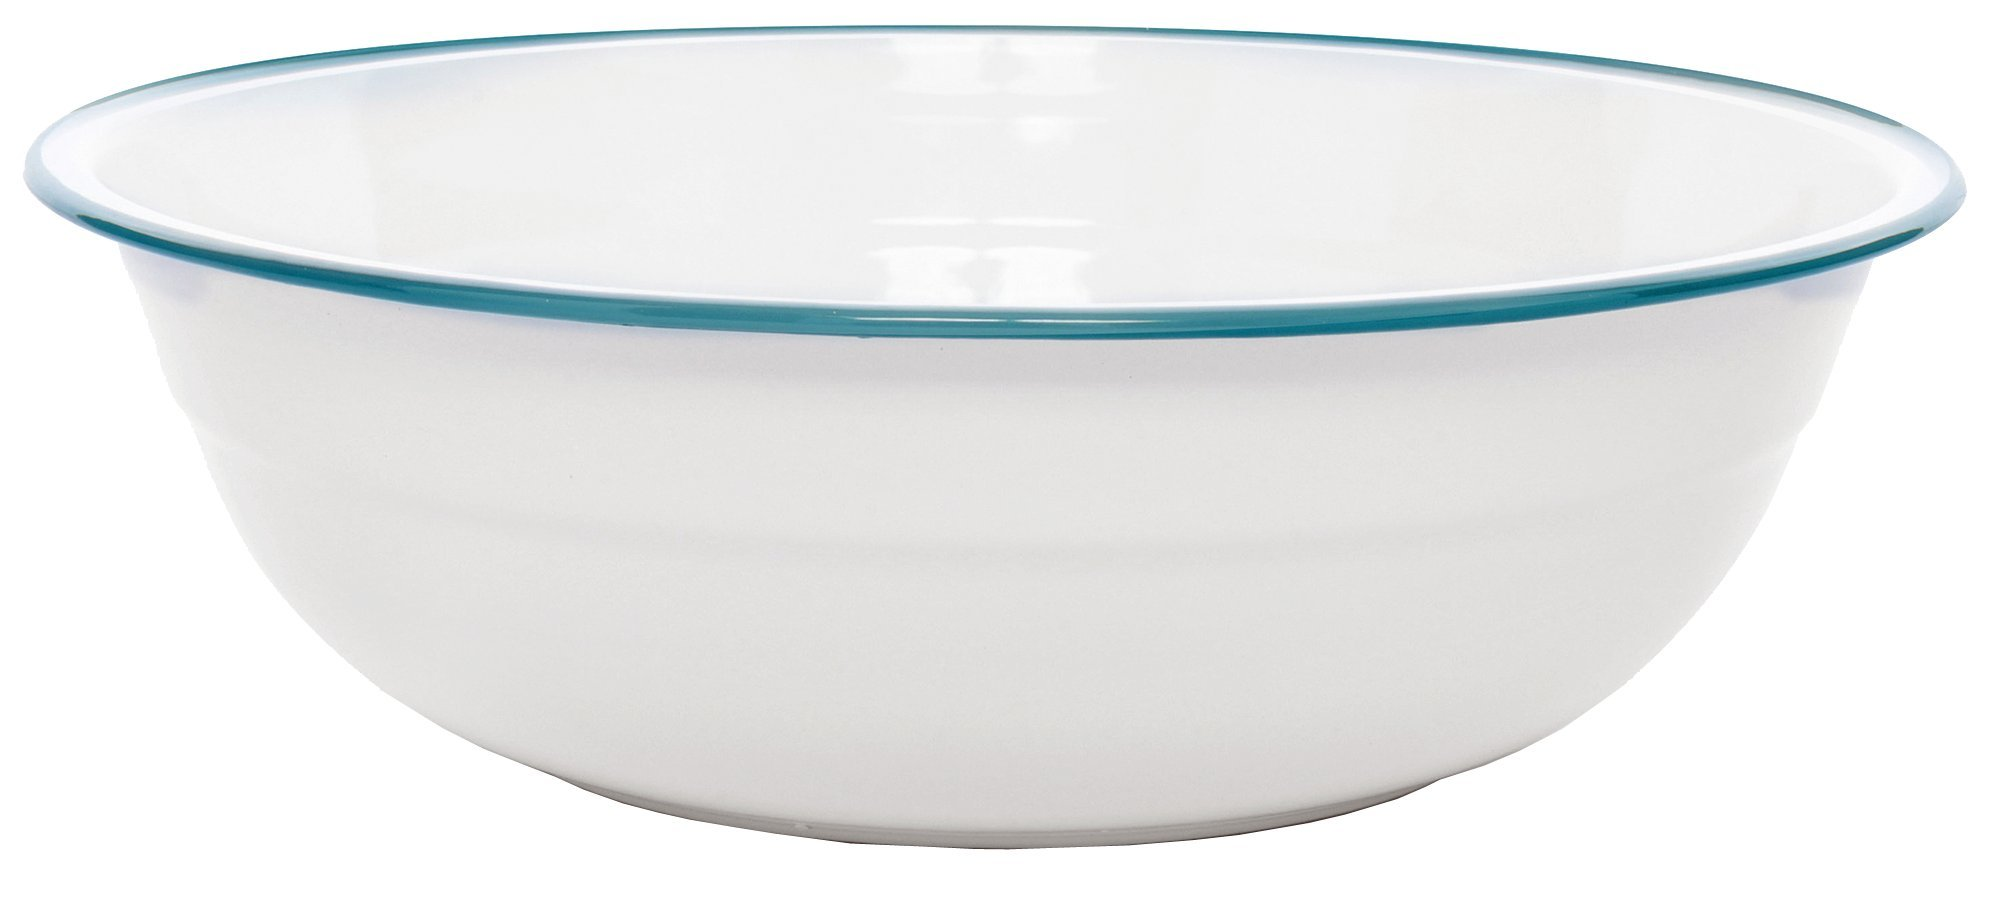 Enamelware Basin, 8 quart, Vintage White/Turquoise by Crow Canyon Home (Image #1)